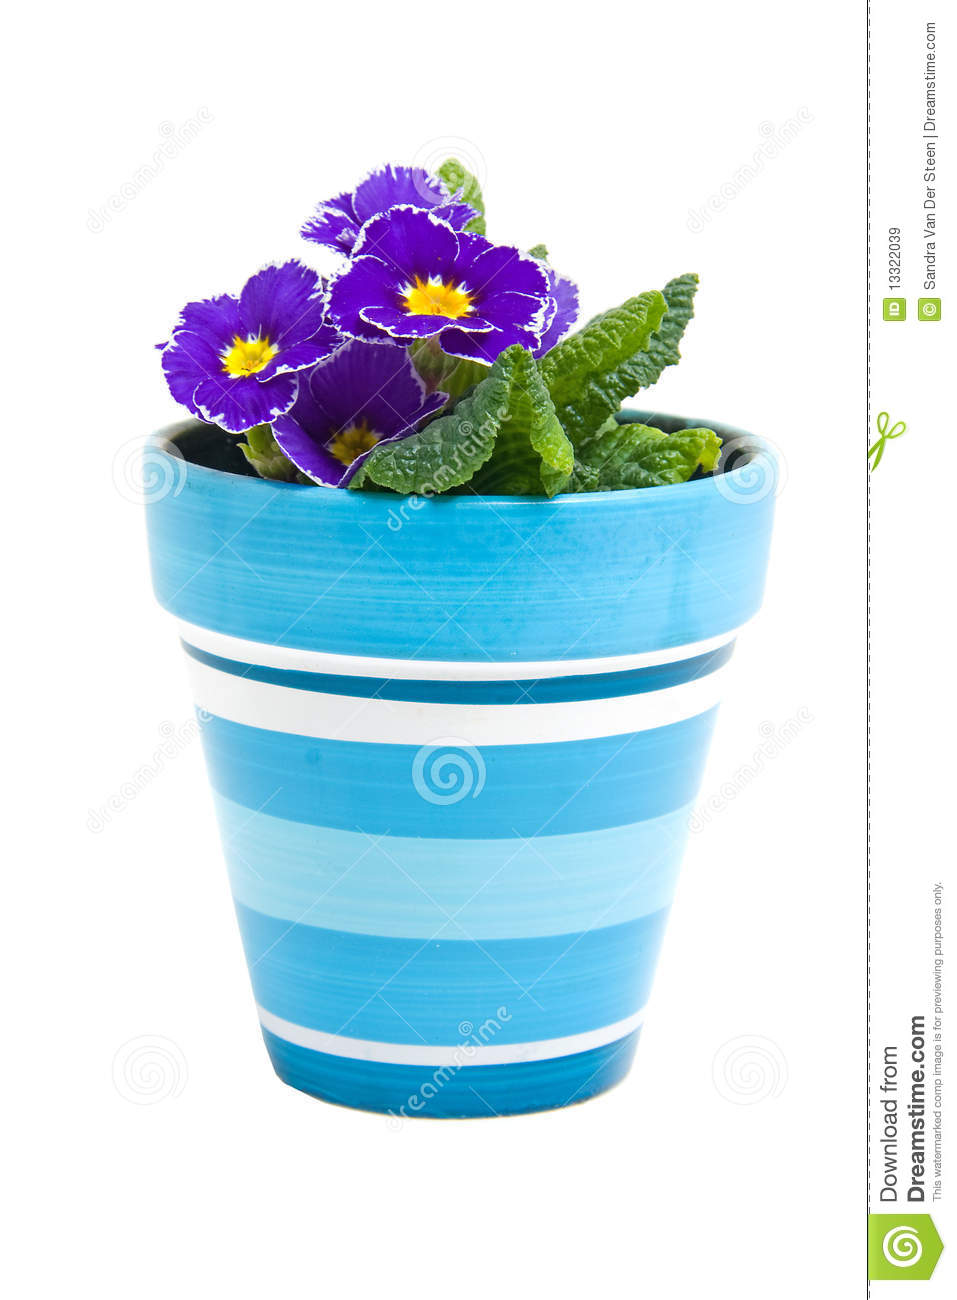 Purple Primula Flower In Blue Pot Stock Image Image Of Flowers